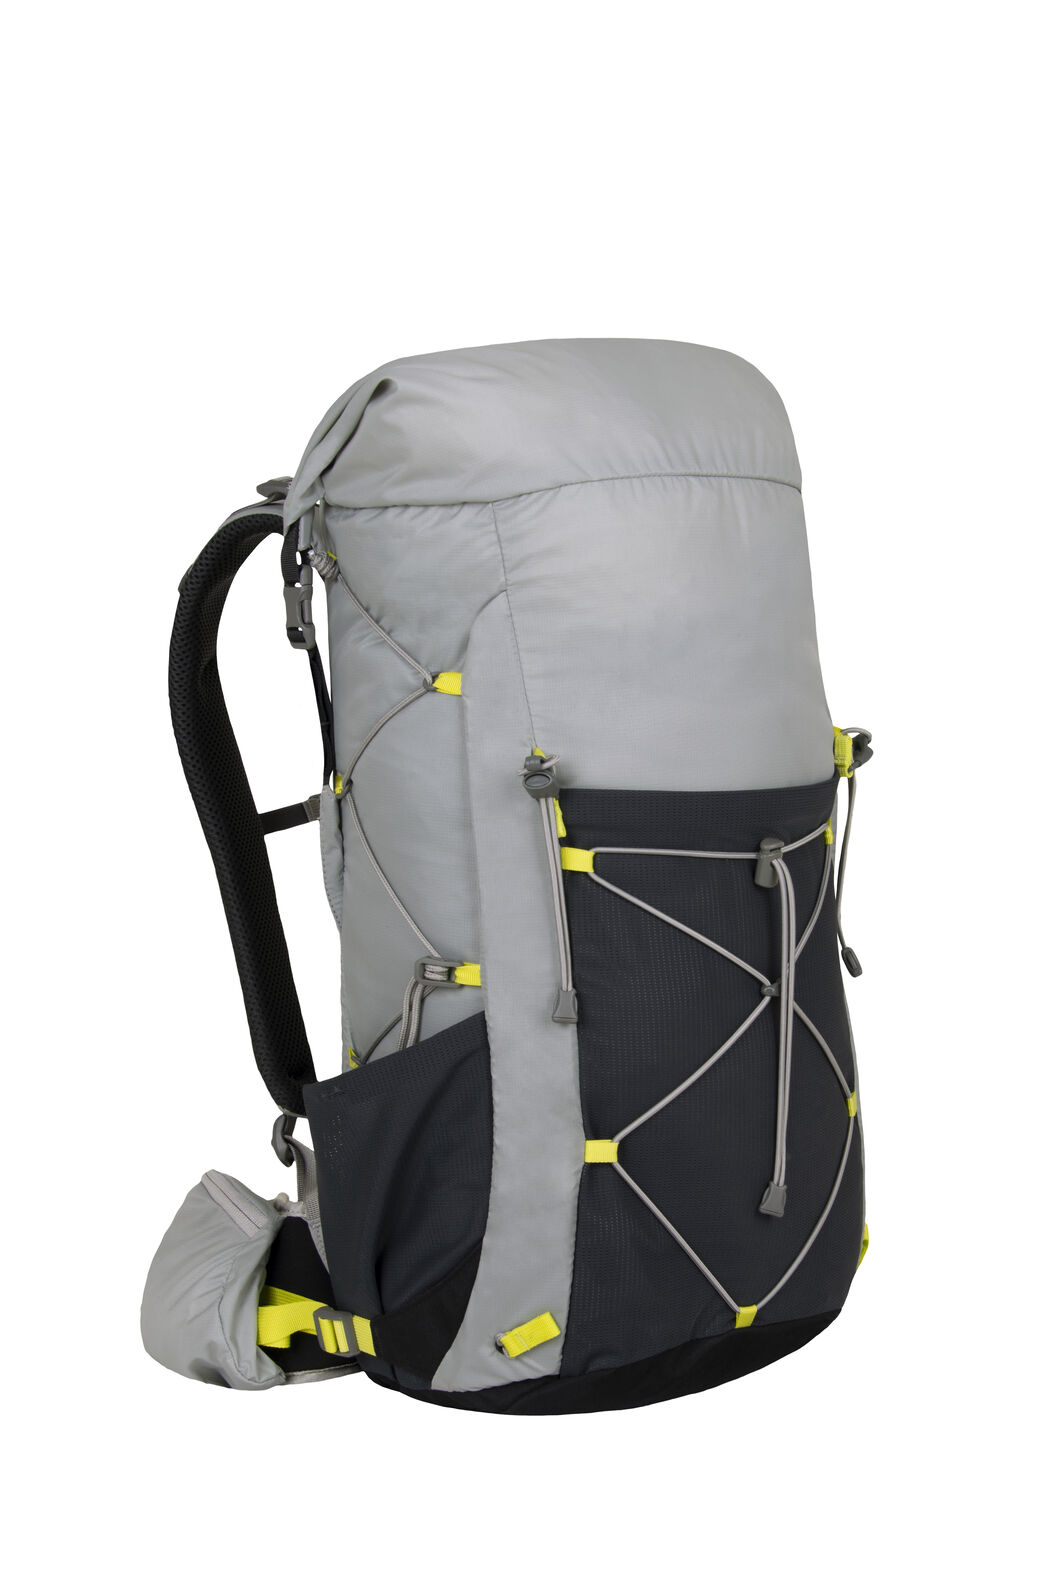 Macpac Fiord 28L Pack, Highway, hi-res